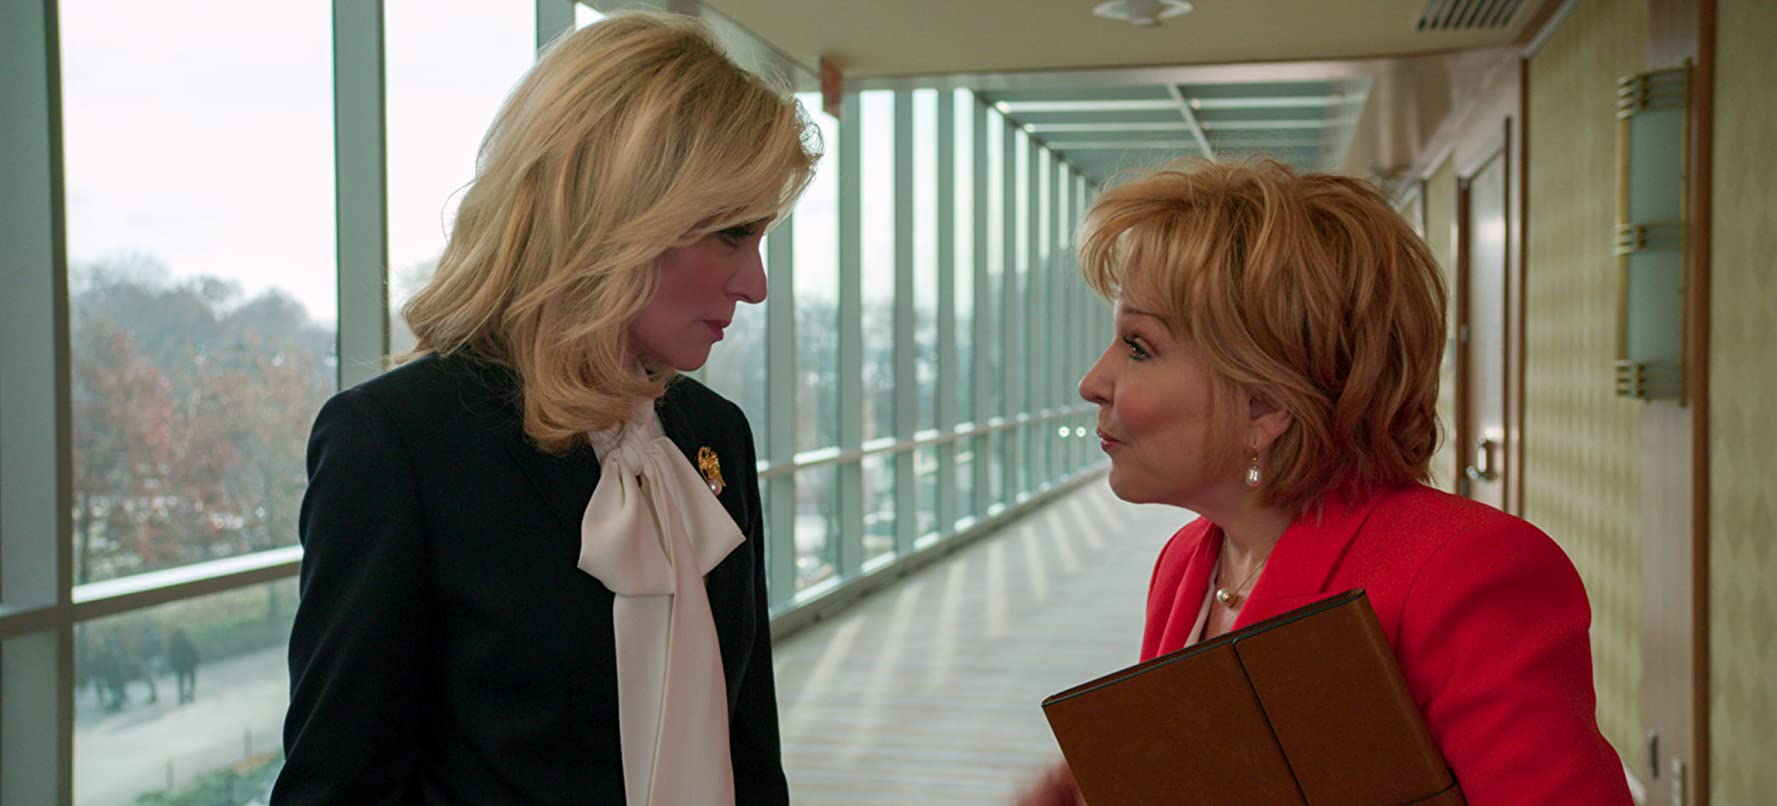 Bette Midler and Judith Light in The Politician (2019)